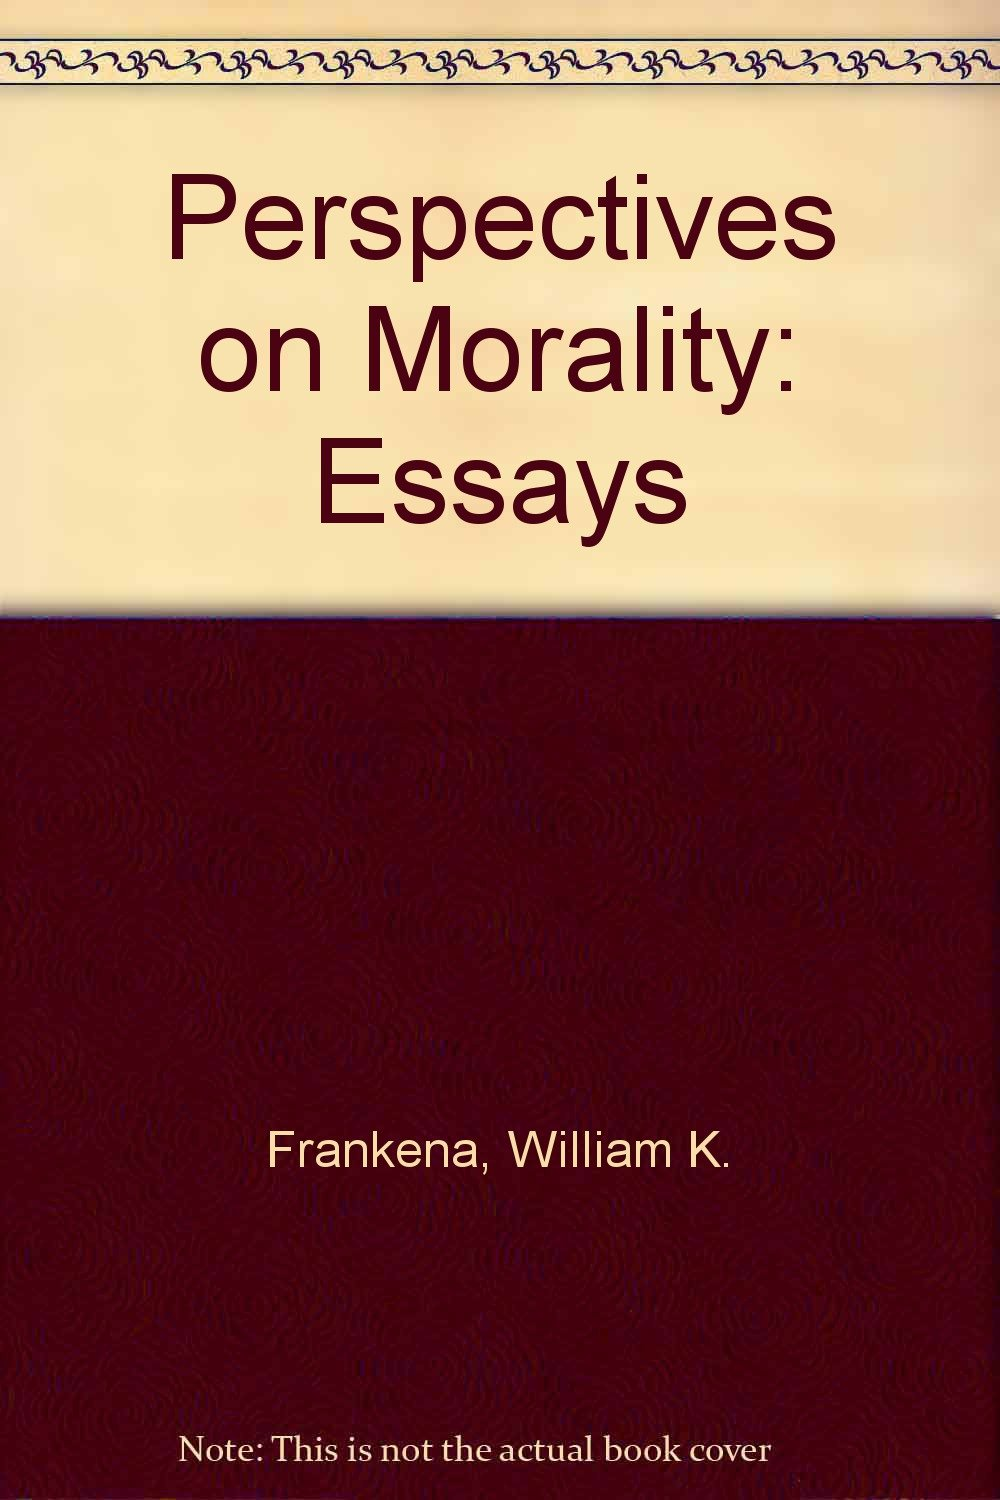 morality essays the authority of law essays on law and morality  perspectives on morality essays by william frankena kenneth perspectives on morality essays by william frankena kenneth